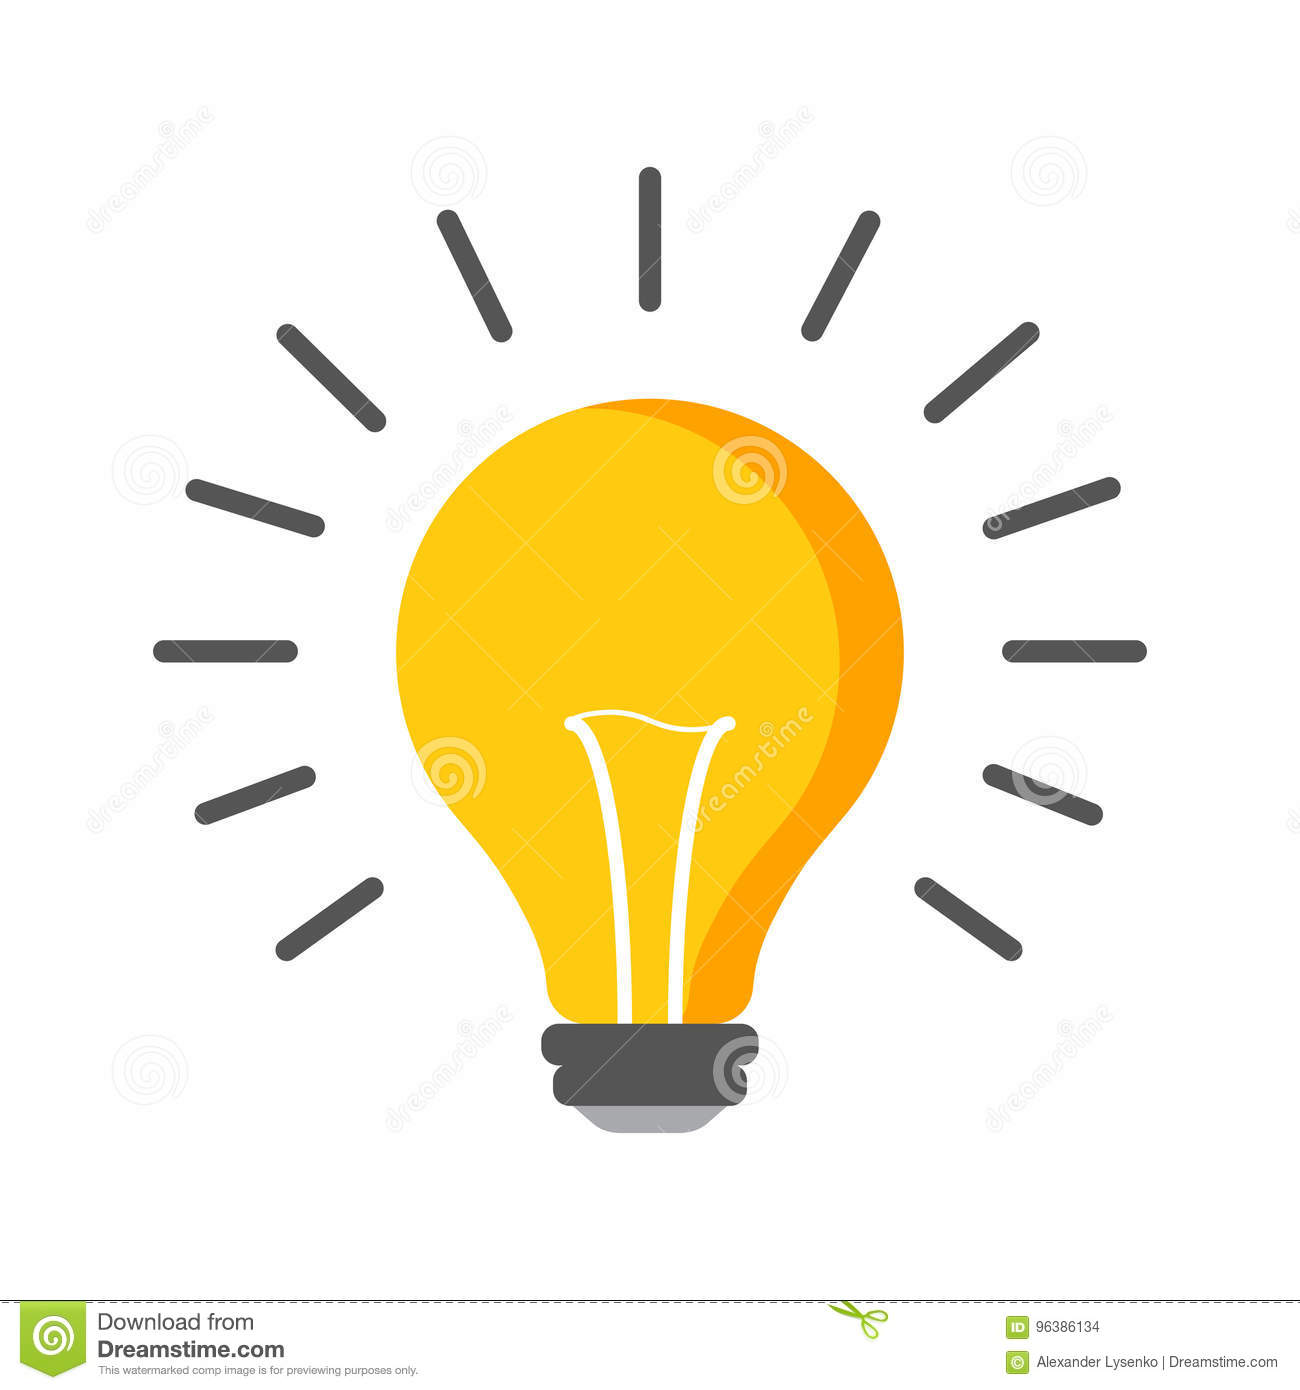 Halogen lightbulb icon. Light bulb sign. Electricity and idea symbol. Icon on white background. Flat vector illustration.